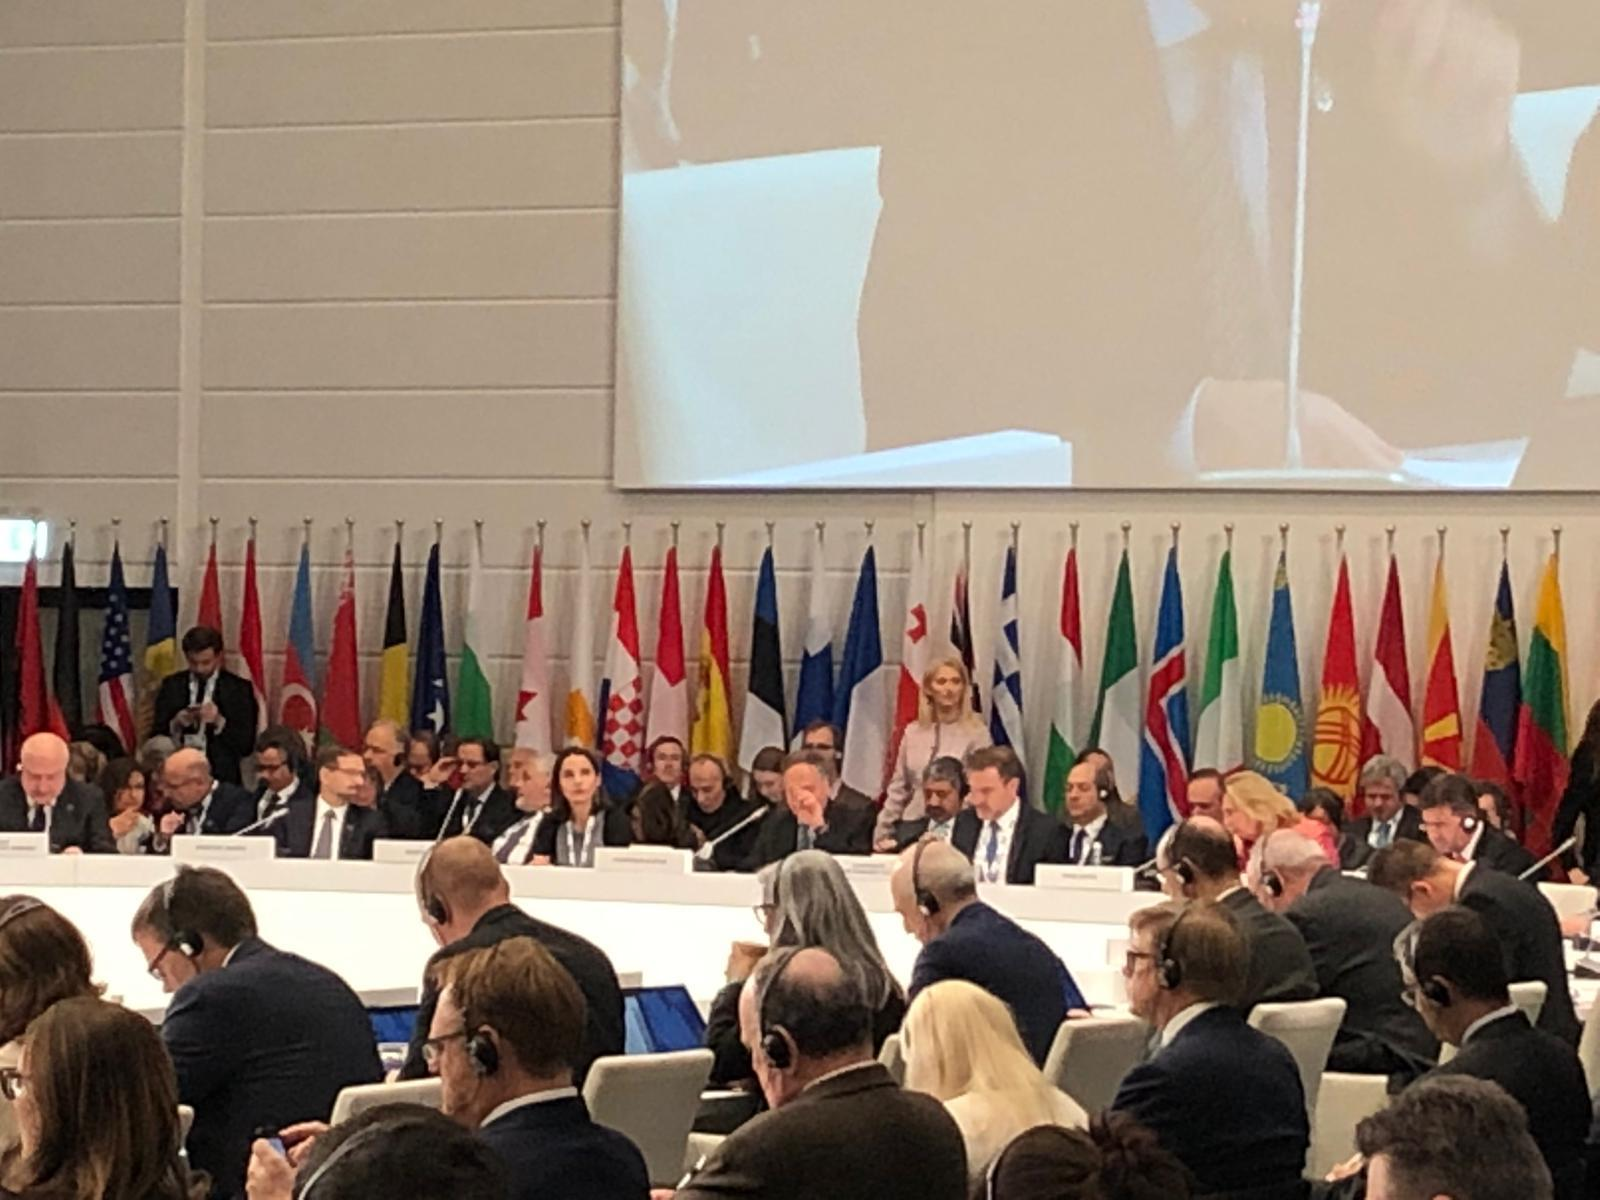 Azerbaijan FM: Conflicts in OSCE area remain most serious threat to peace, security (PHOTO)